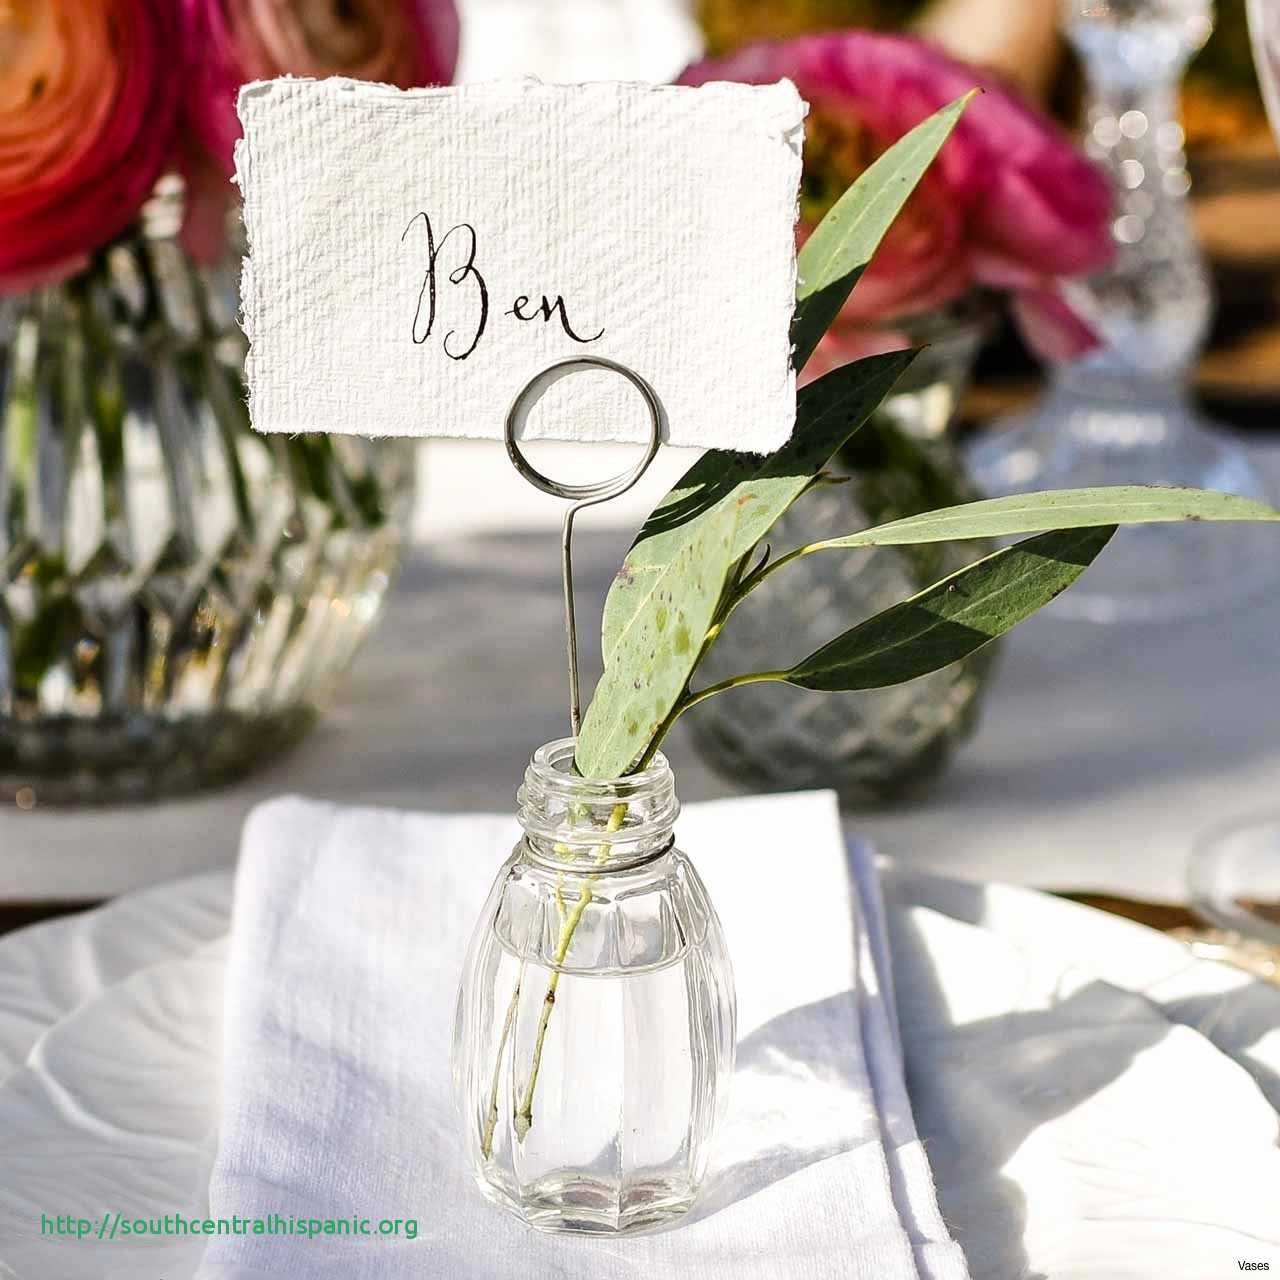 small vases for wedding centerpieces of 21 beau place card wedding ideas blog pertaining to wedding place cards best jar flower 1h vases wedding bud vase centerpiece idea i 0d bulk